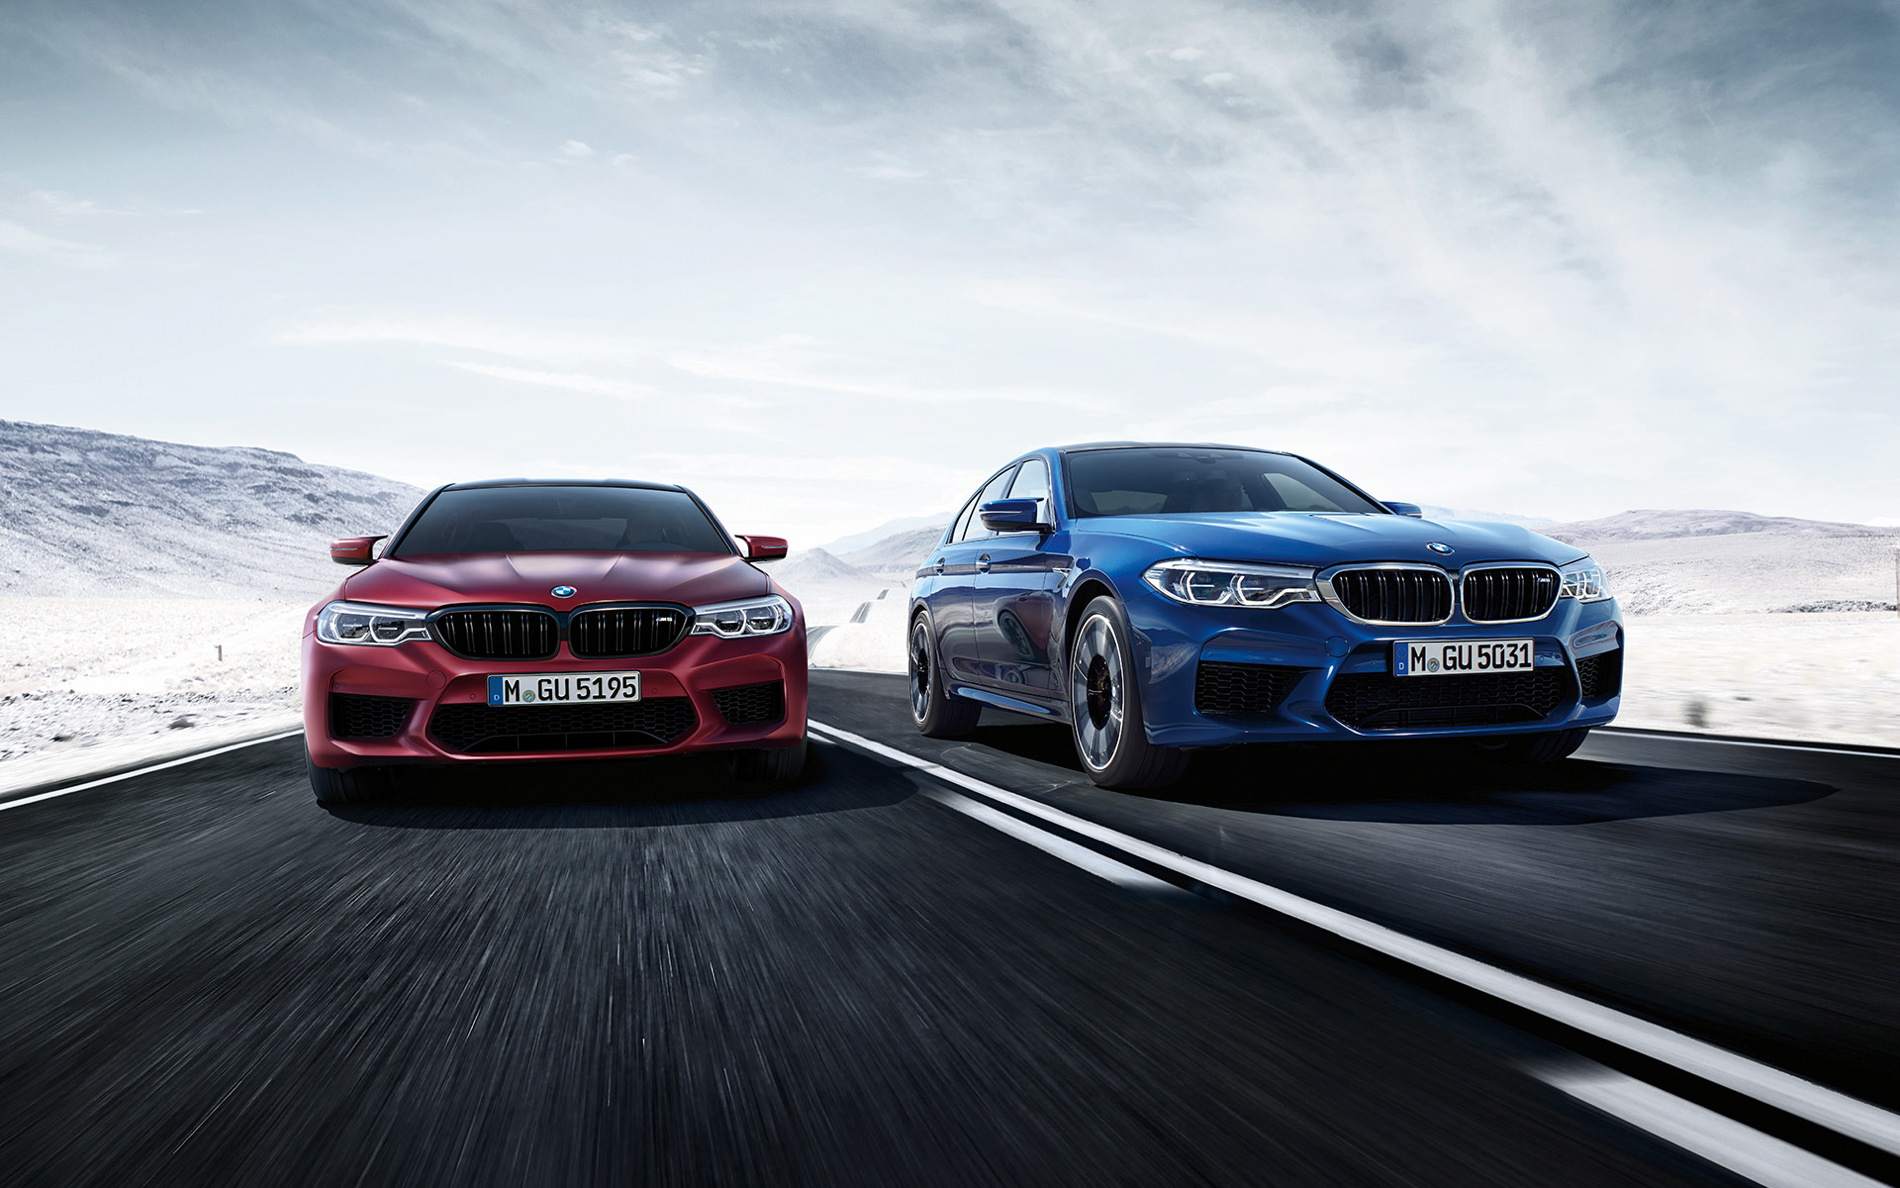 Download Wallpapers Of The New 2018 Bmw F90 M5